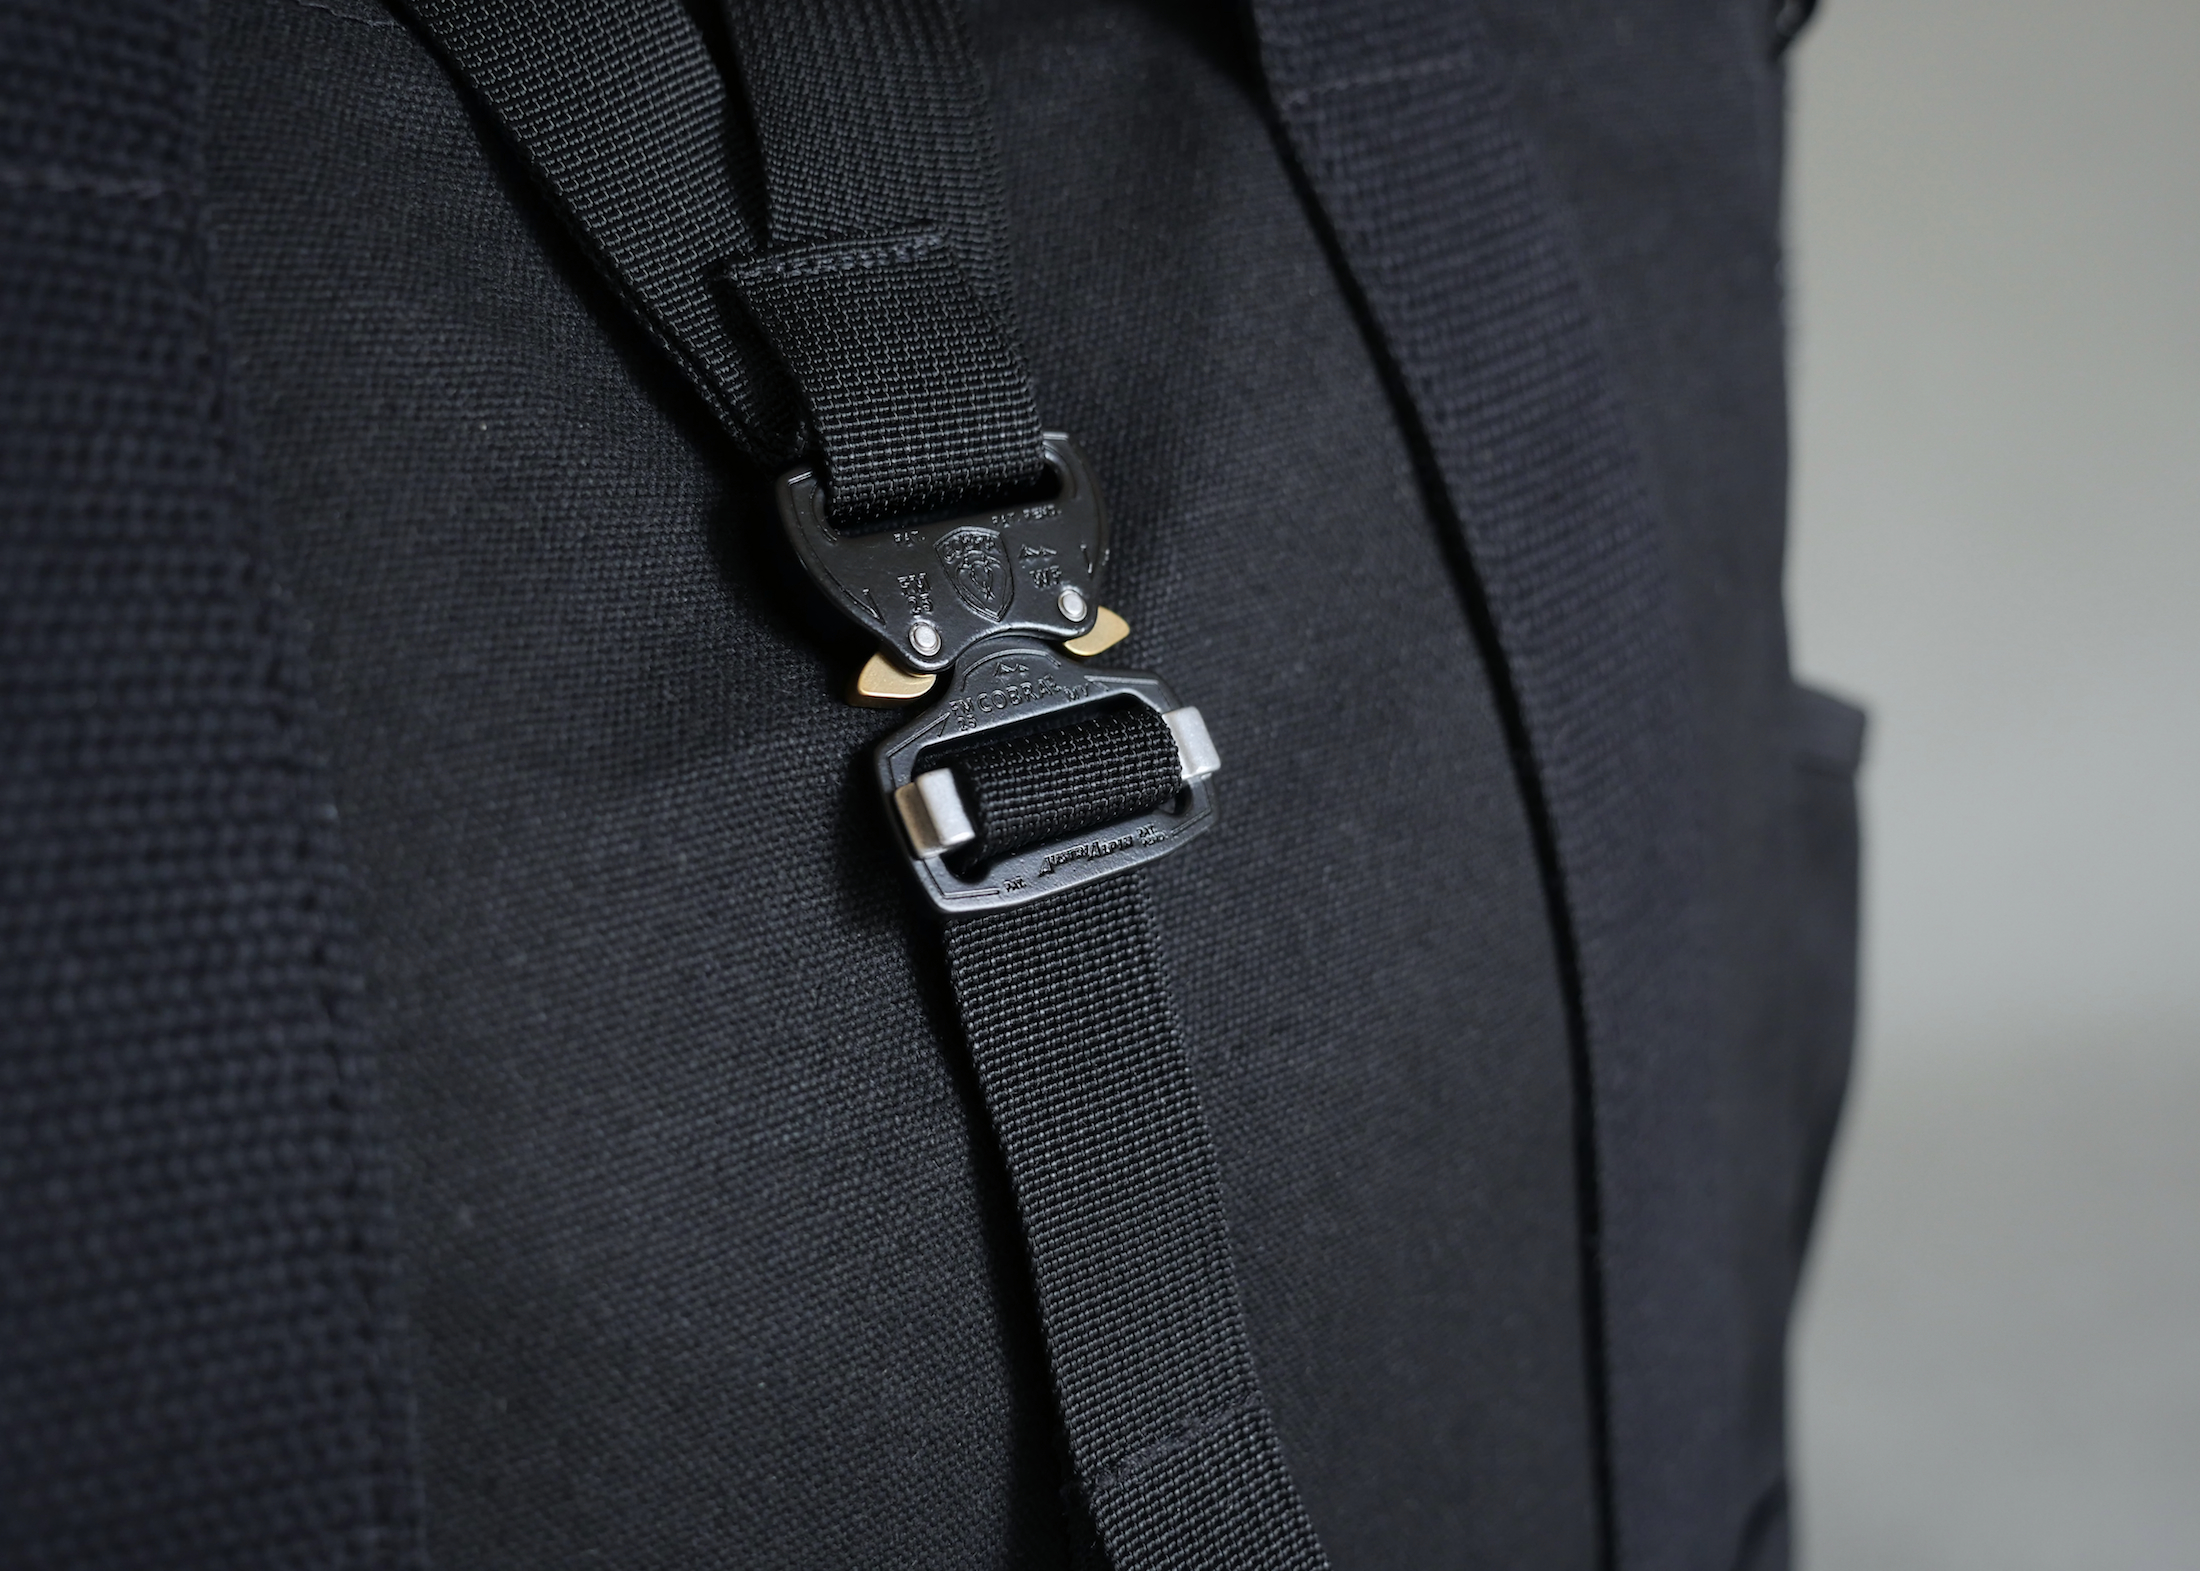 High quality Cobra® quick release buckles - the only choice in our minds to maintain a high level of functionality and durability.